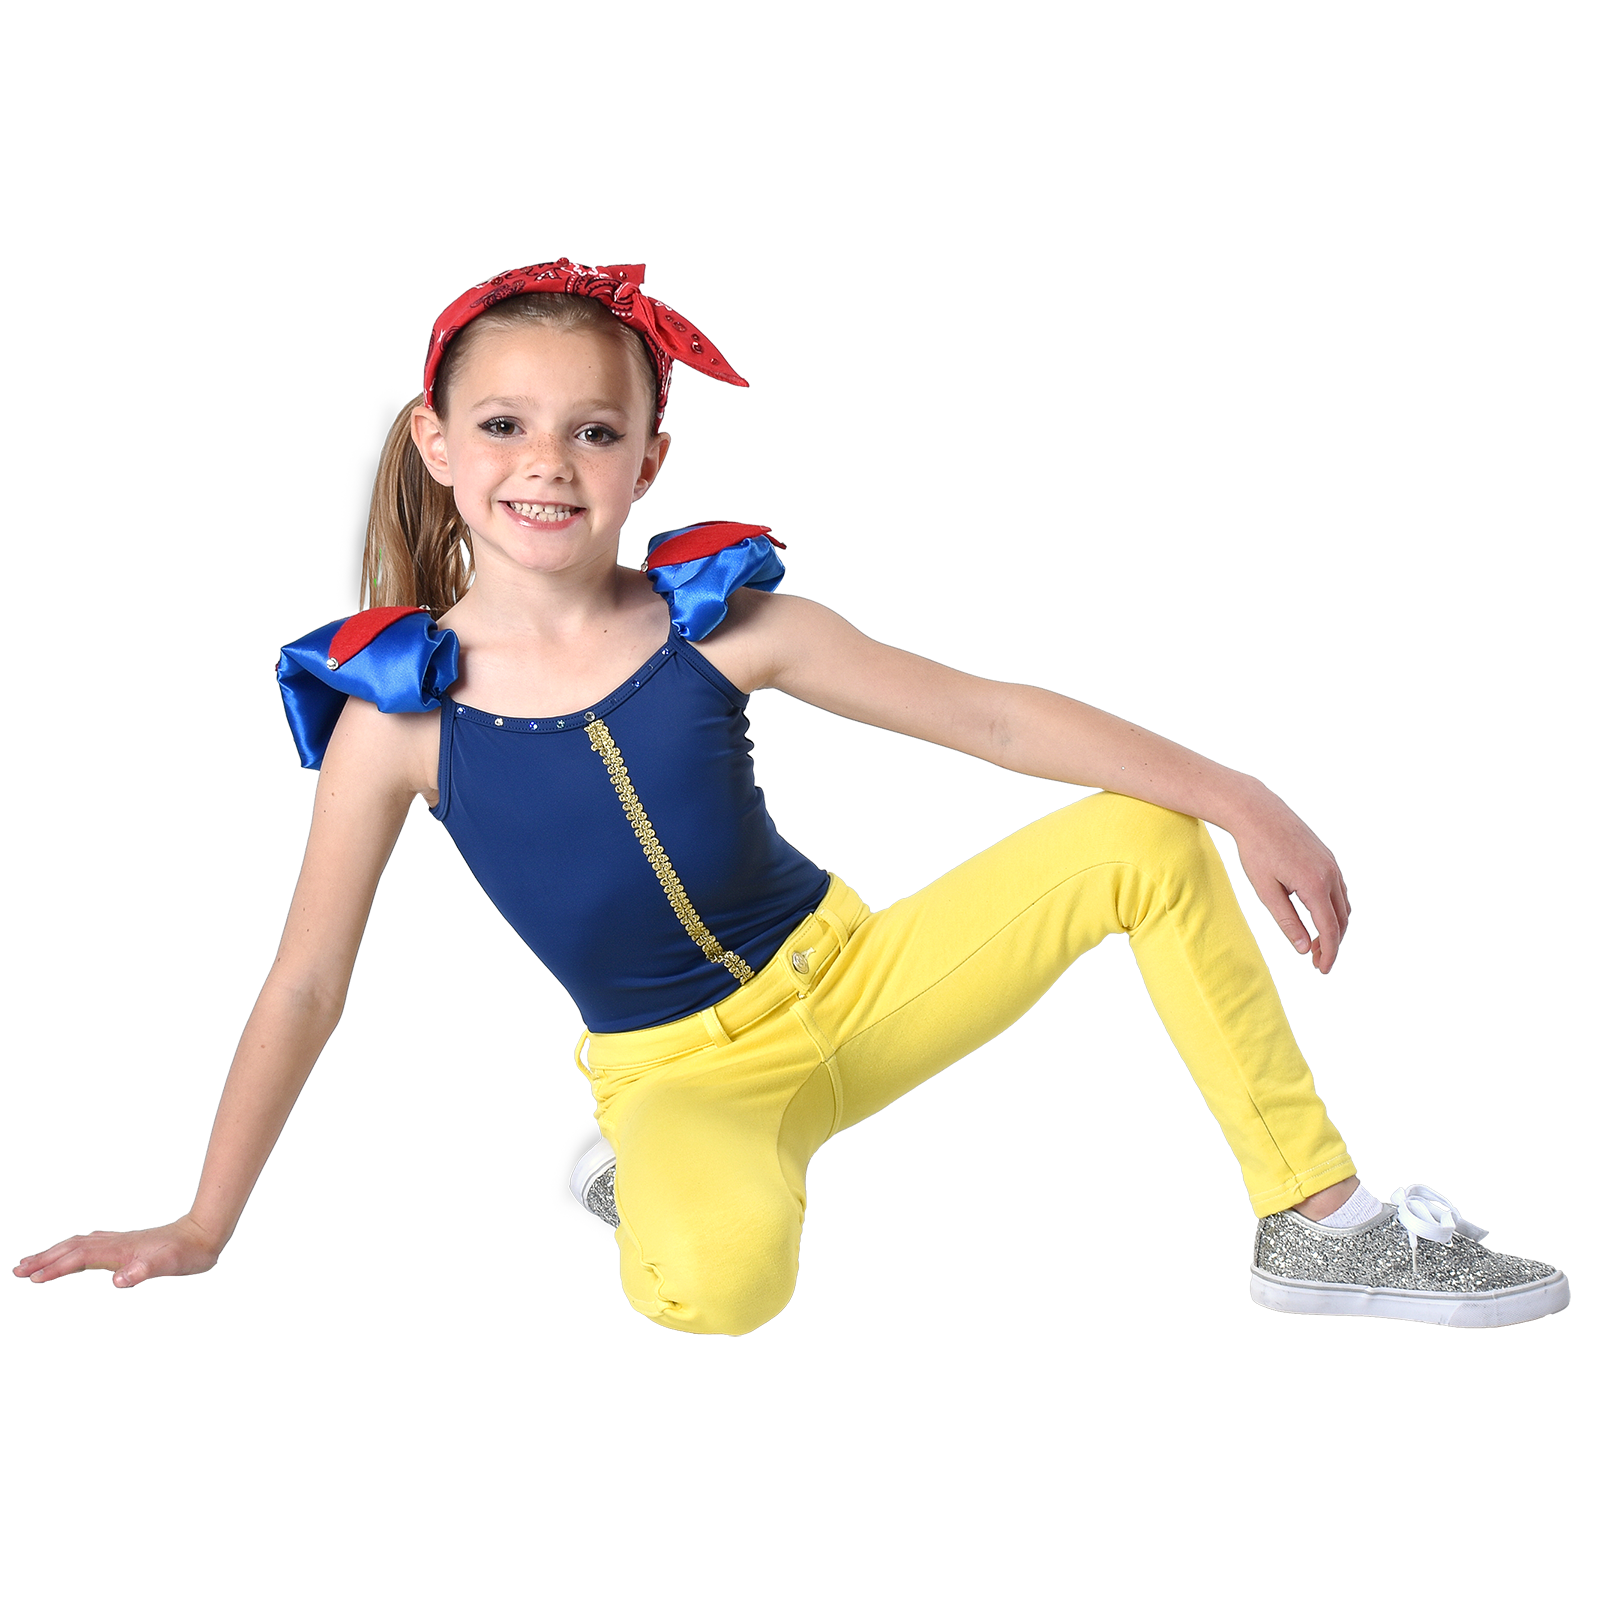 young girl in dance pose